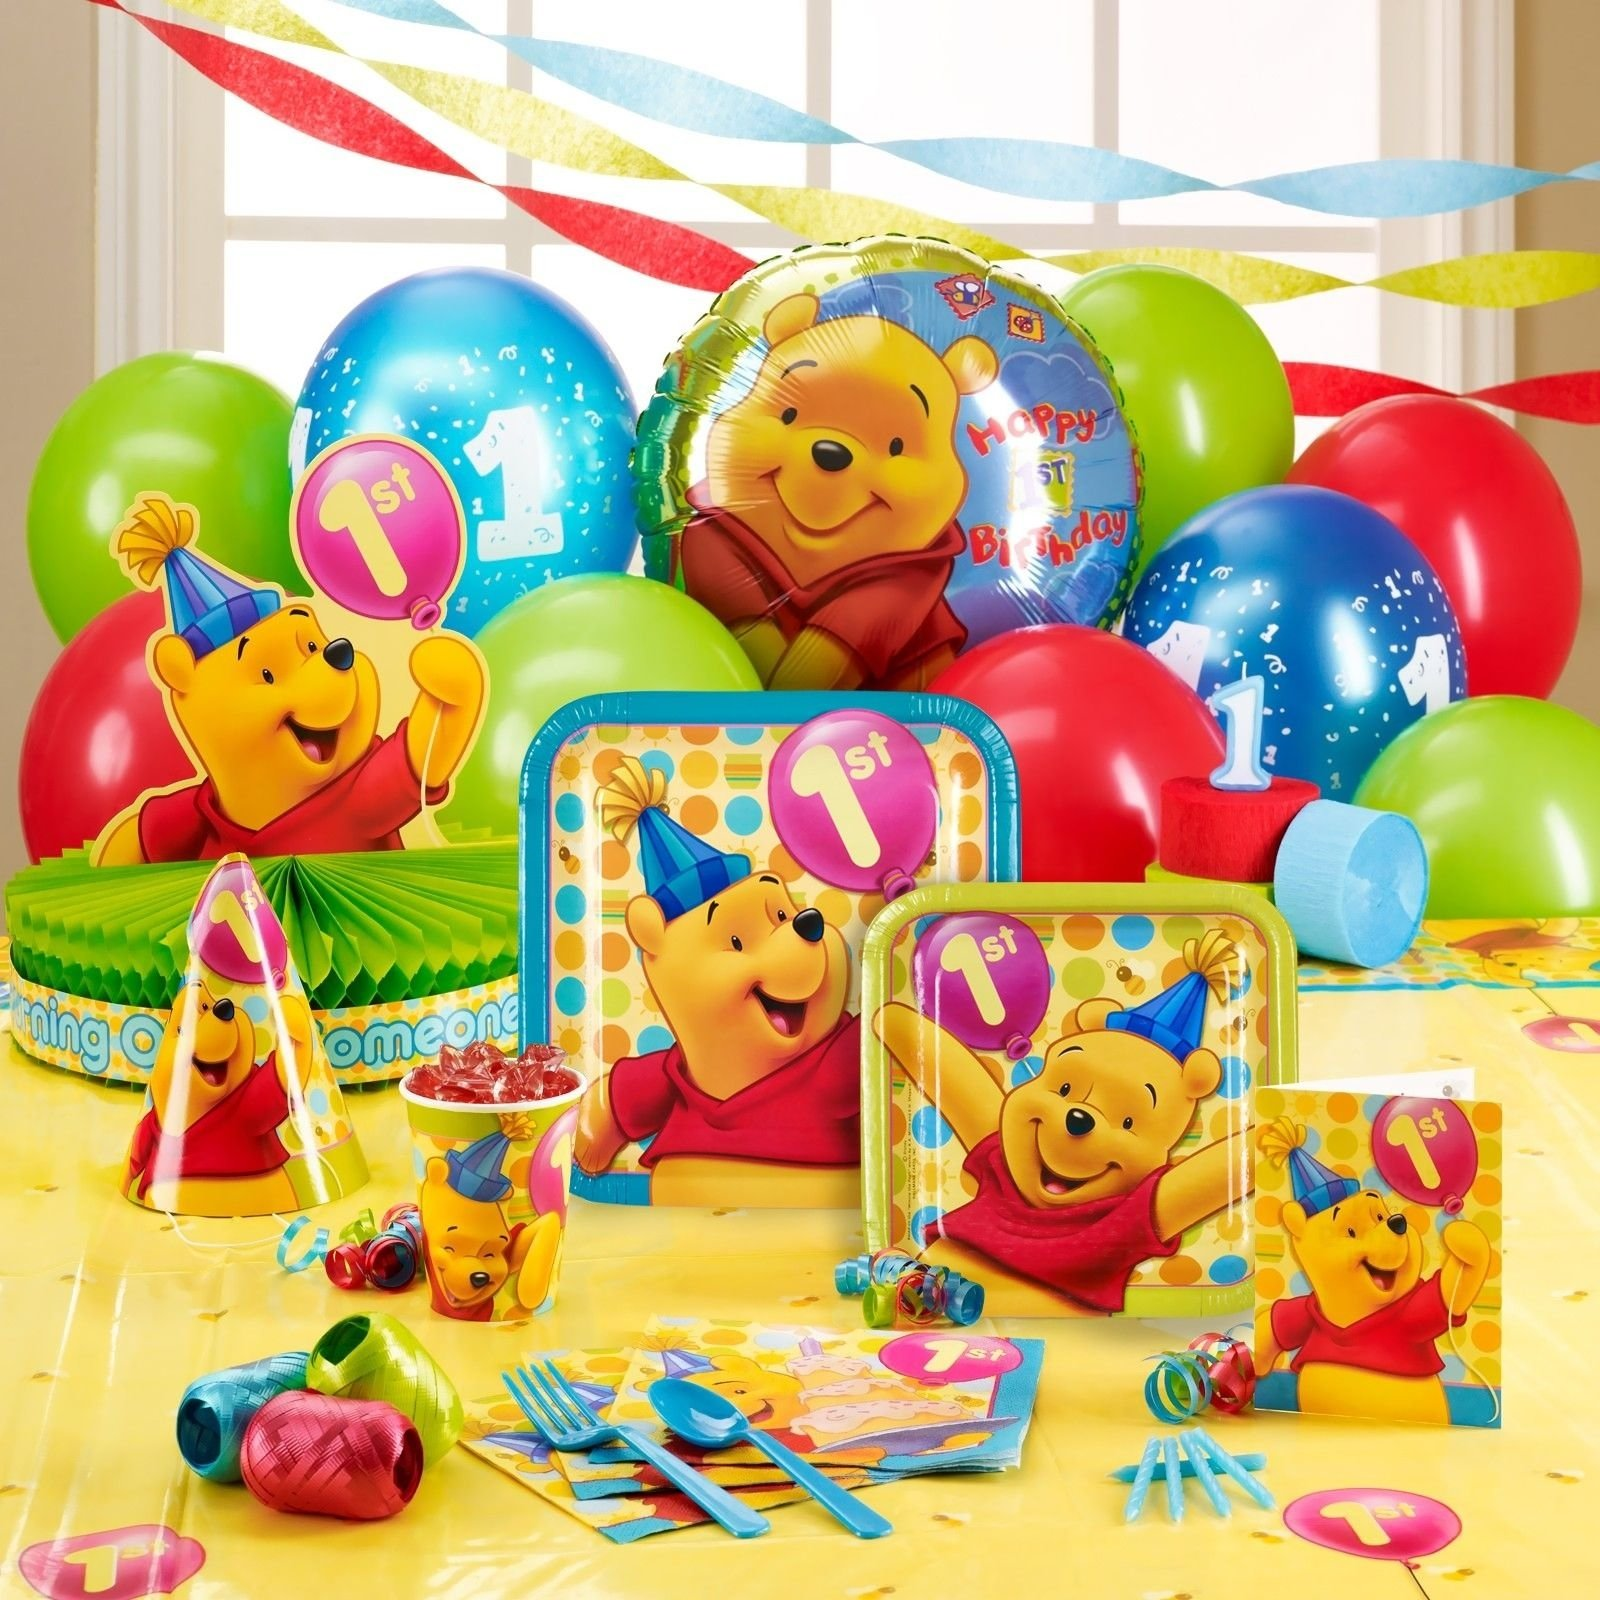 10 Stylish Winnie The Pooh Birthday Ideas winnie the pooh this was my sons 1st birthday party theme party 2021